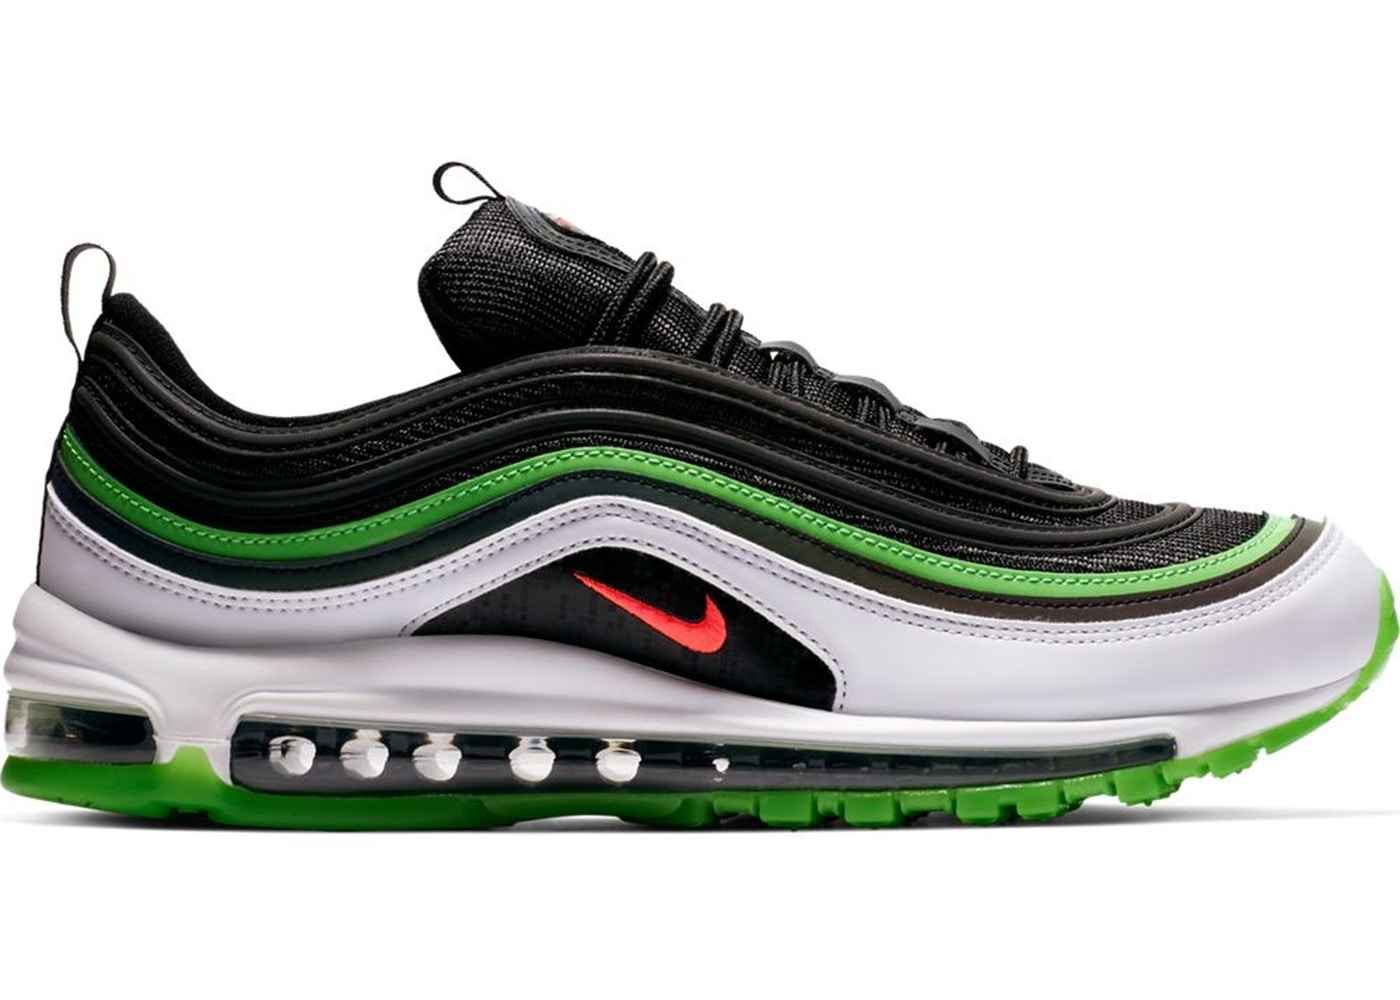 ナイキ メンズ エアマックス97 Air Max 97 Dallas Home スニーカー BLACK/BRIGHT CRIMSON-WHITE-RAGE GREEN